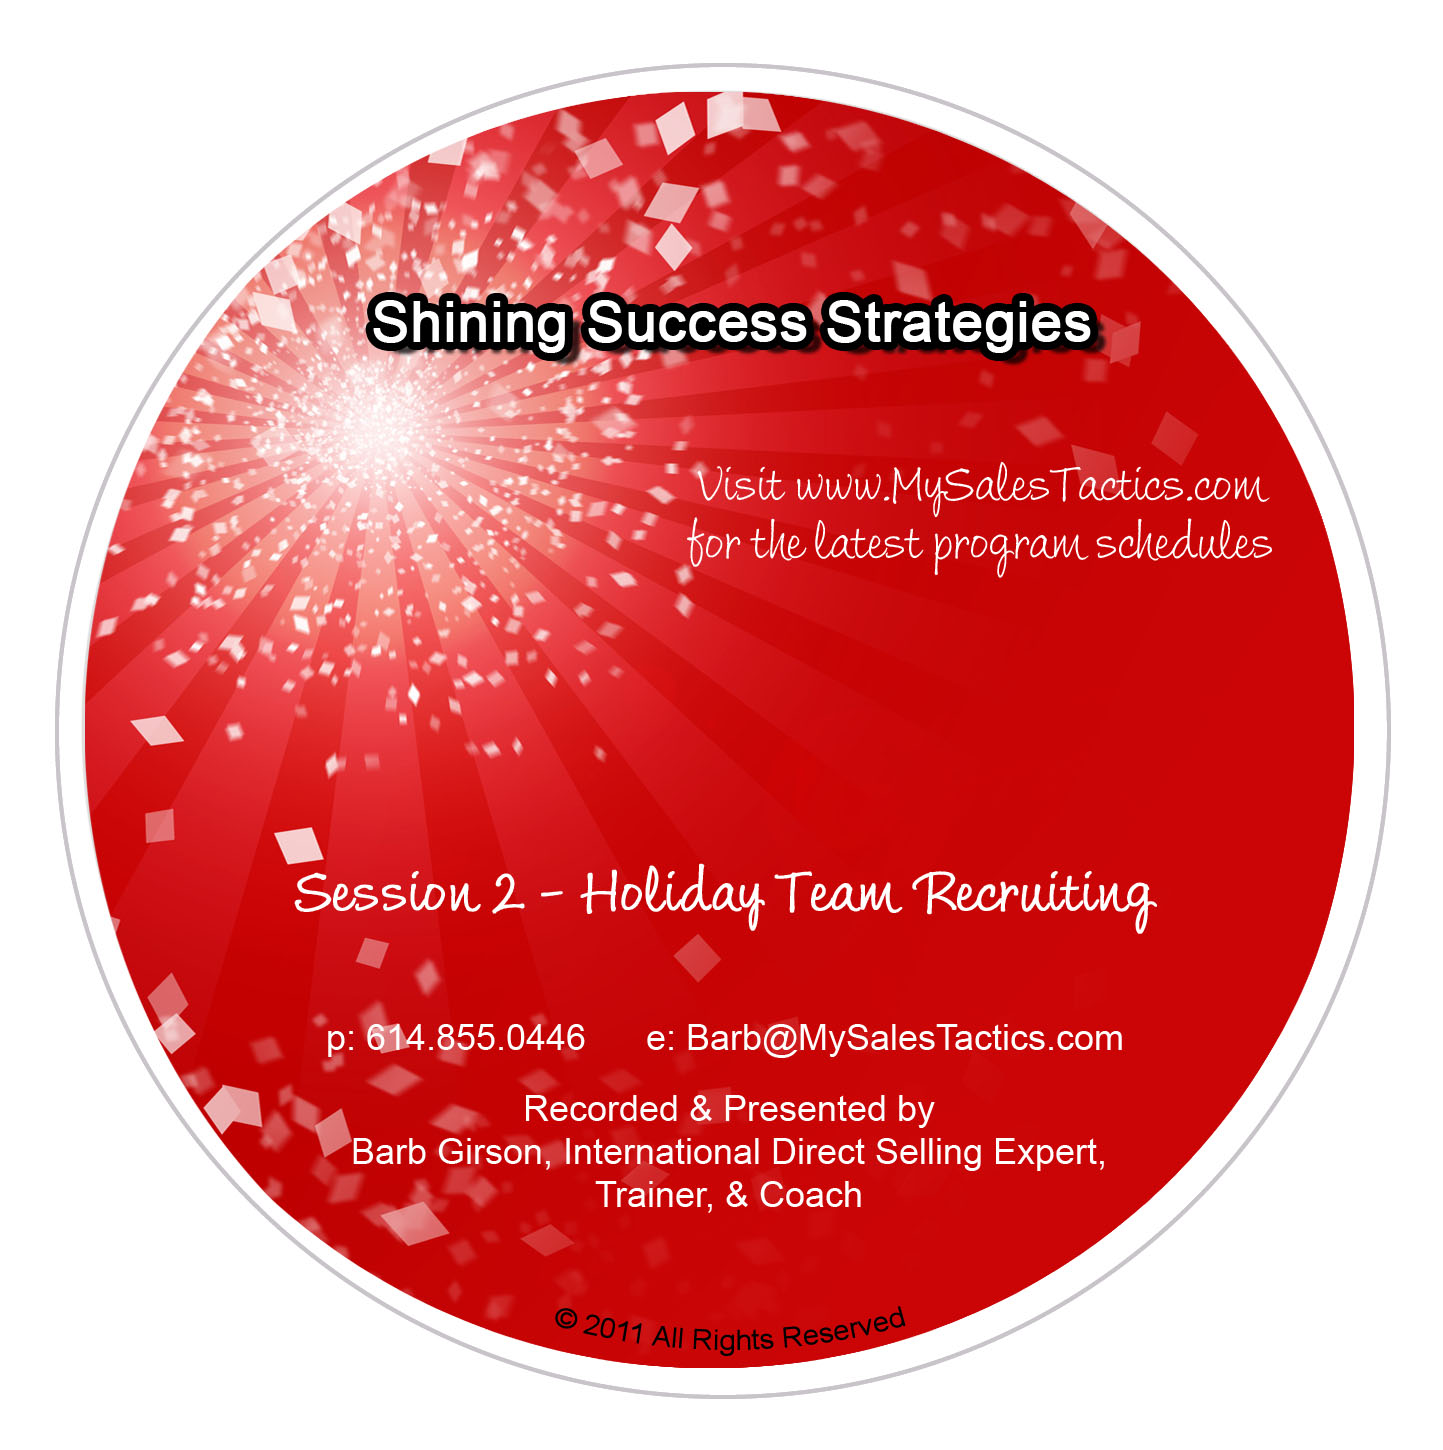 Shining Success Strategies (TM) - Session 2